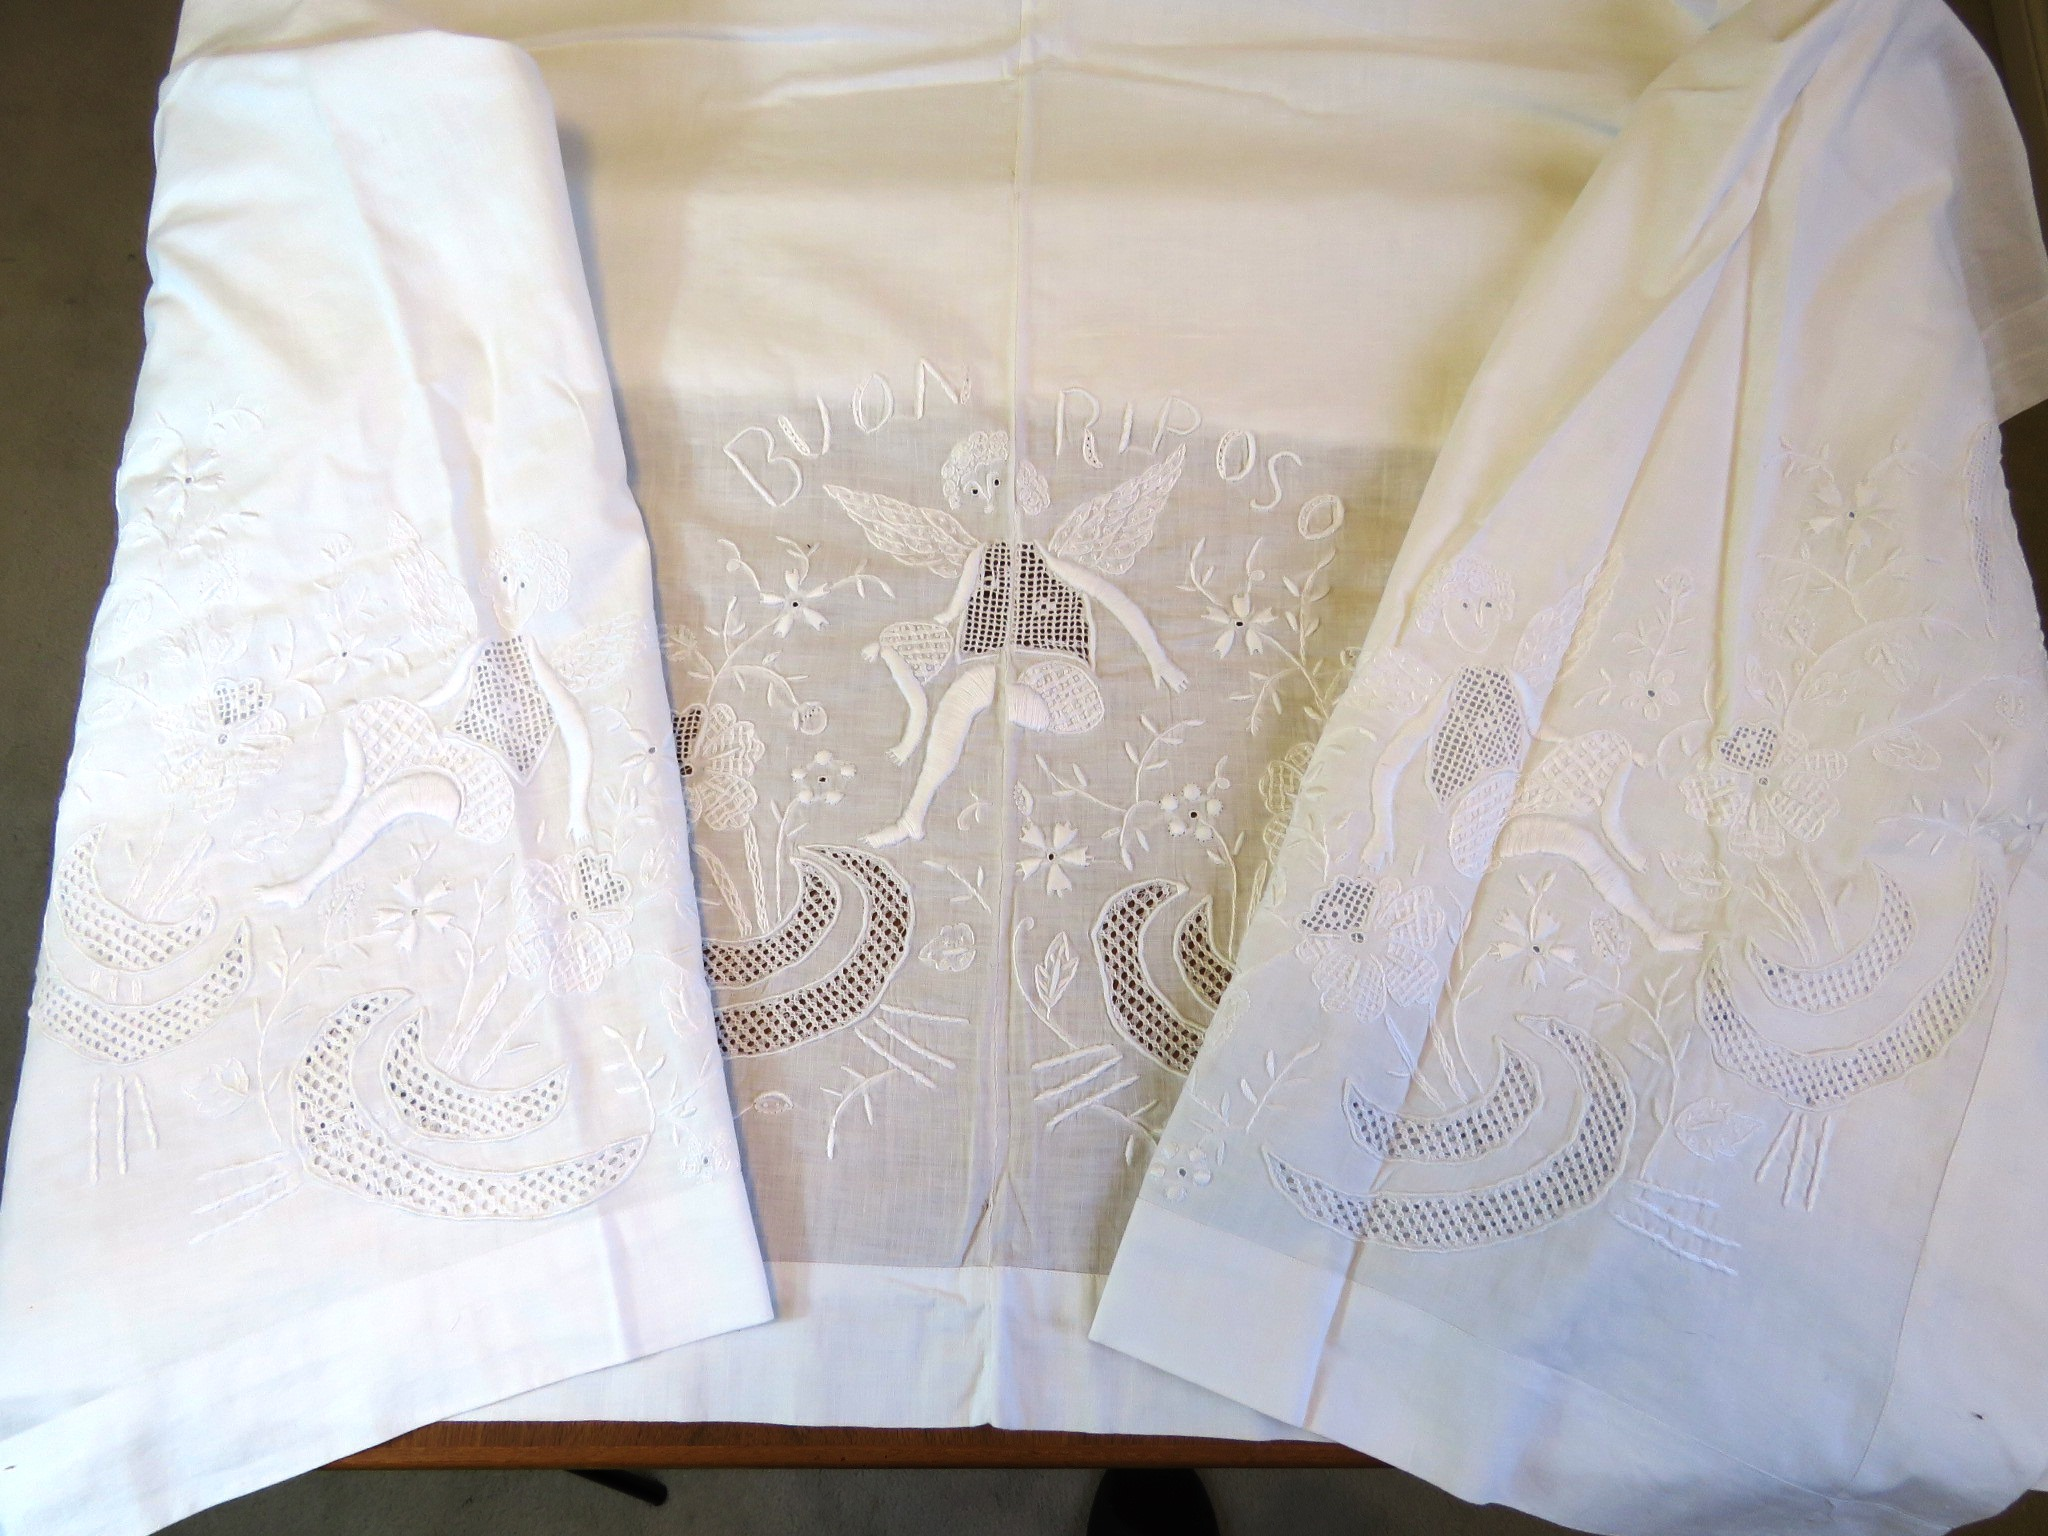 Antique Italian Cotton Sheet Hand Embroidered Angels Cherubs Whitework Italian words Buon Riposo (L&T-519)